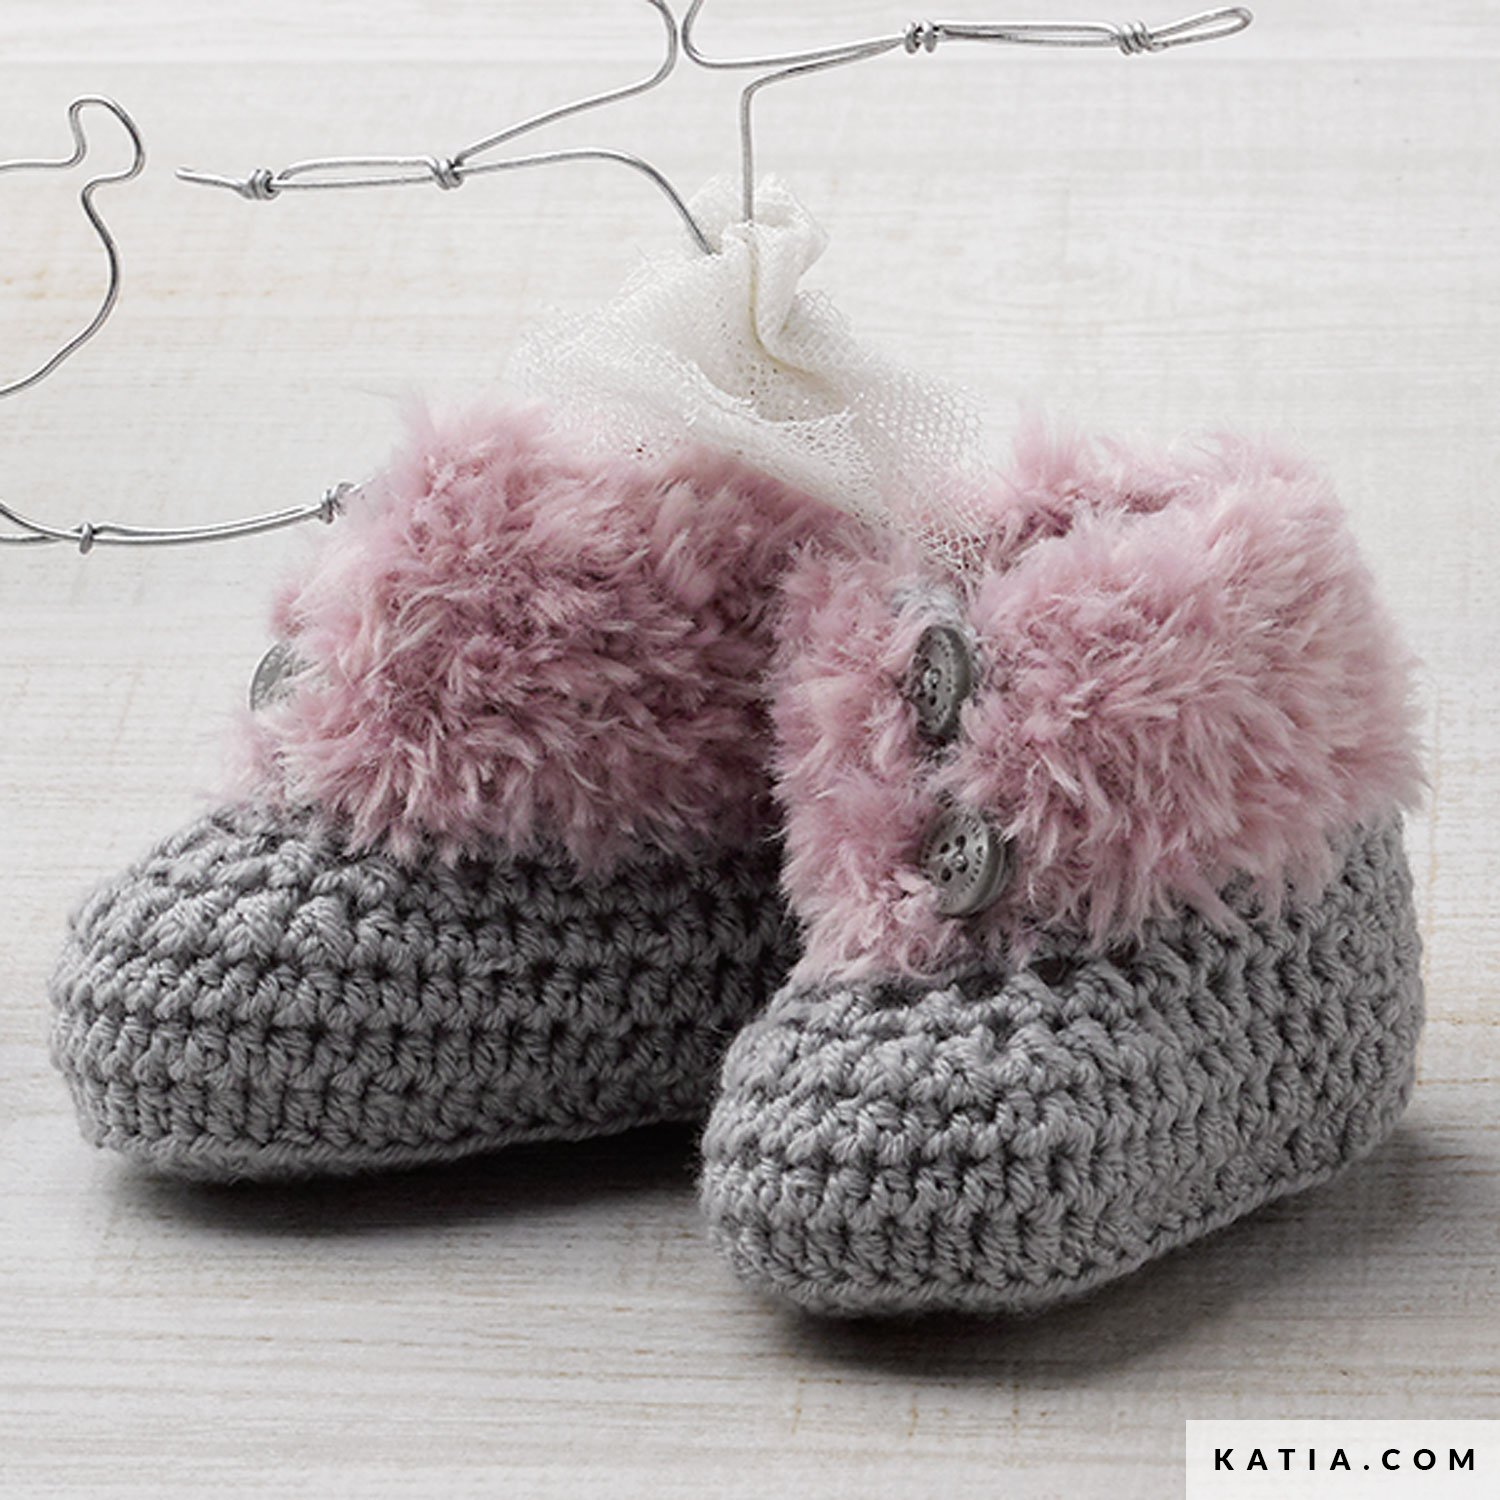 Shoes Baby Autumn Winter Models Patterns Katiacom